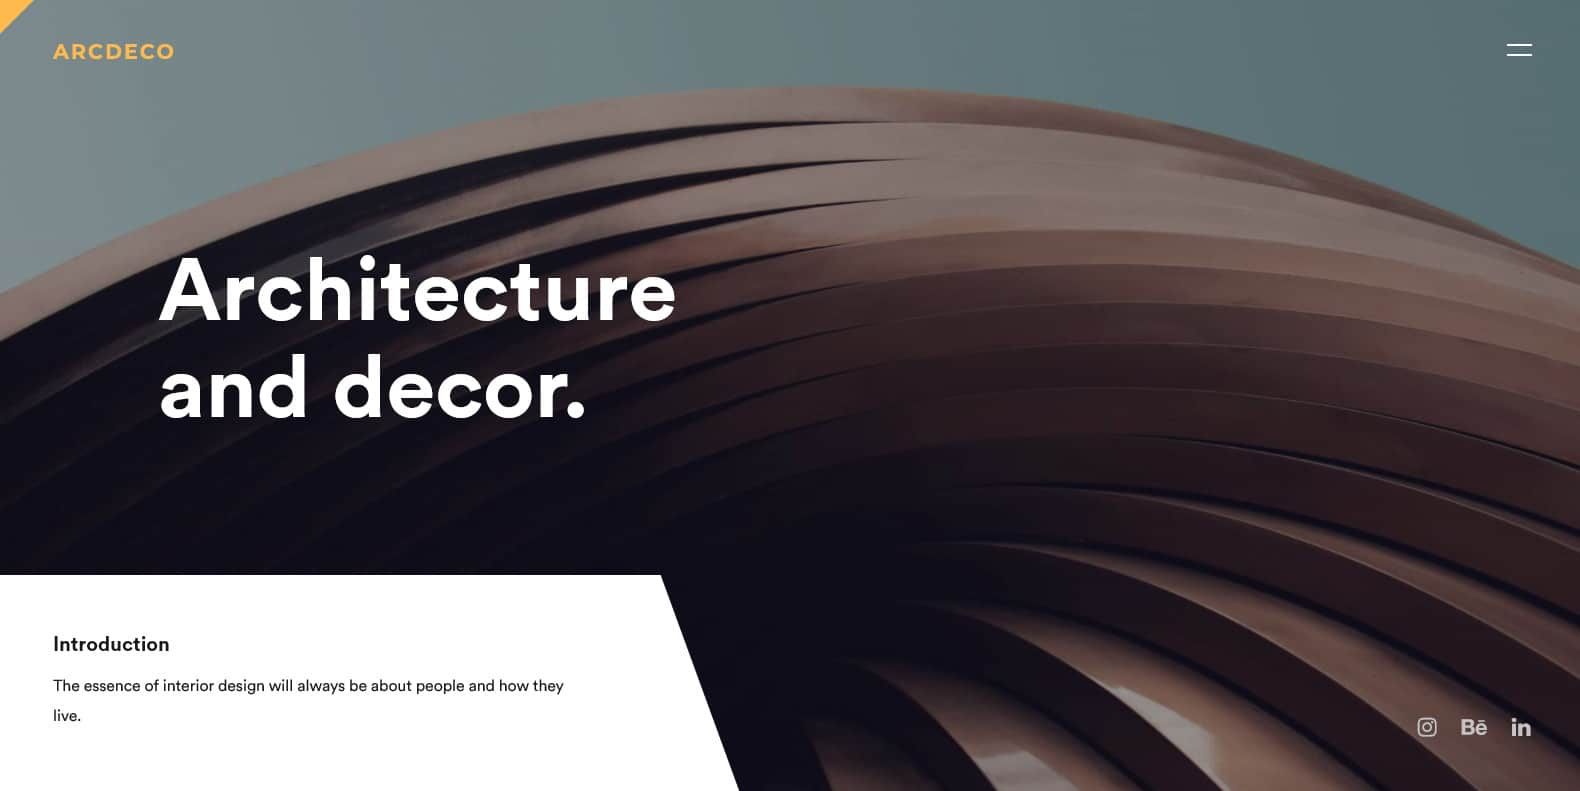 arcdeco-interior-design-website-templates